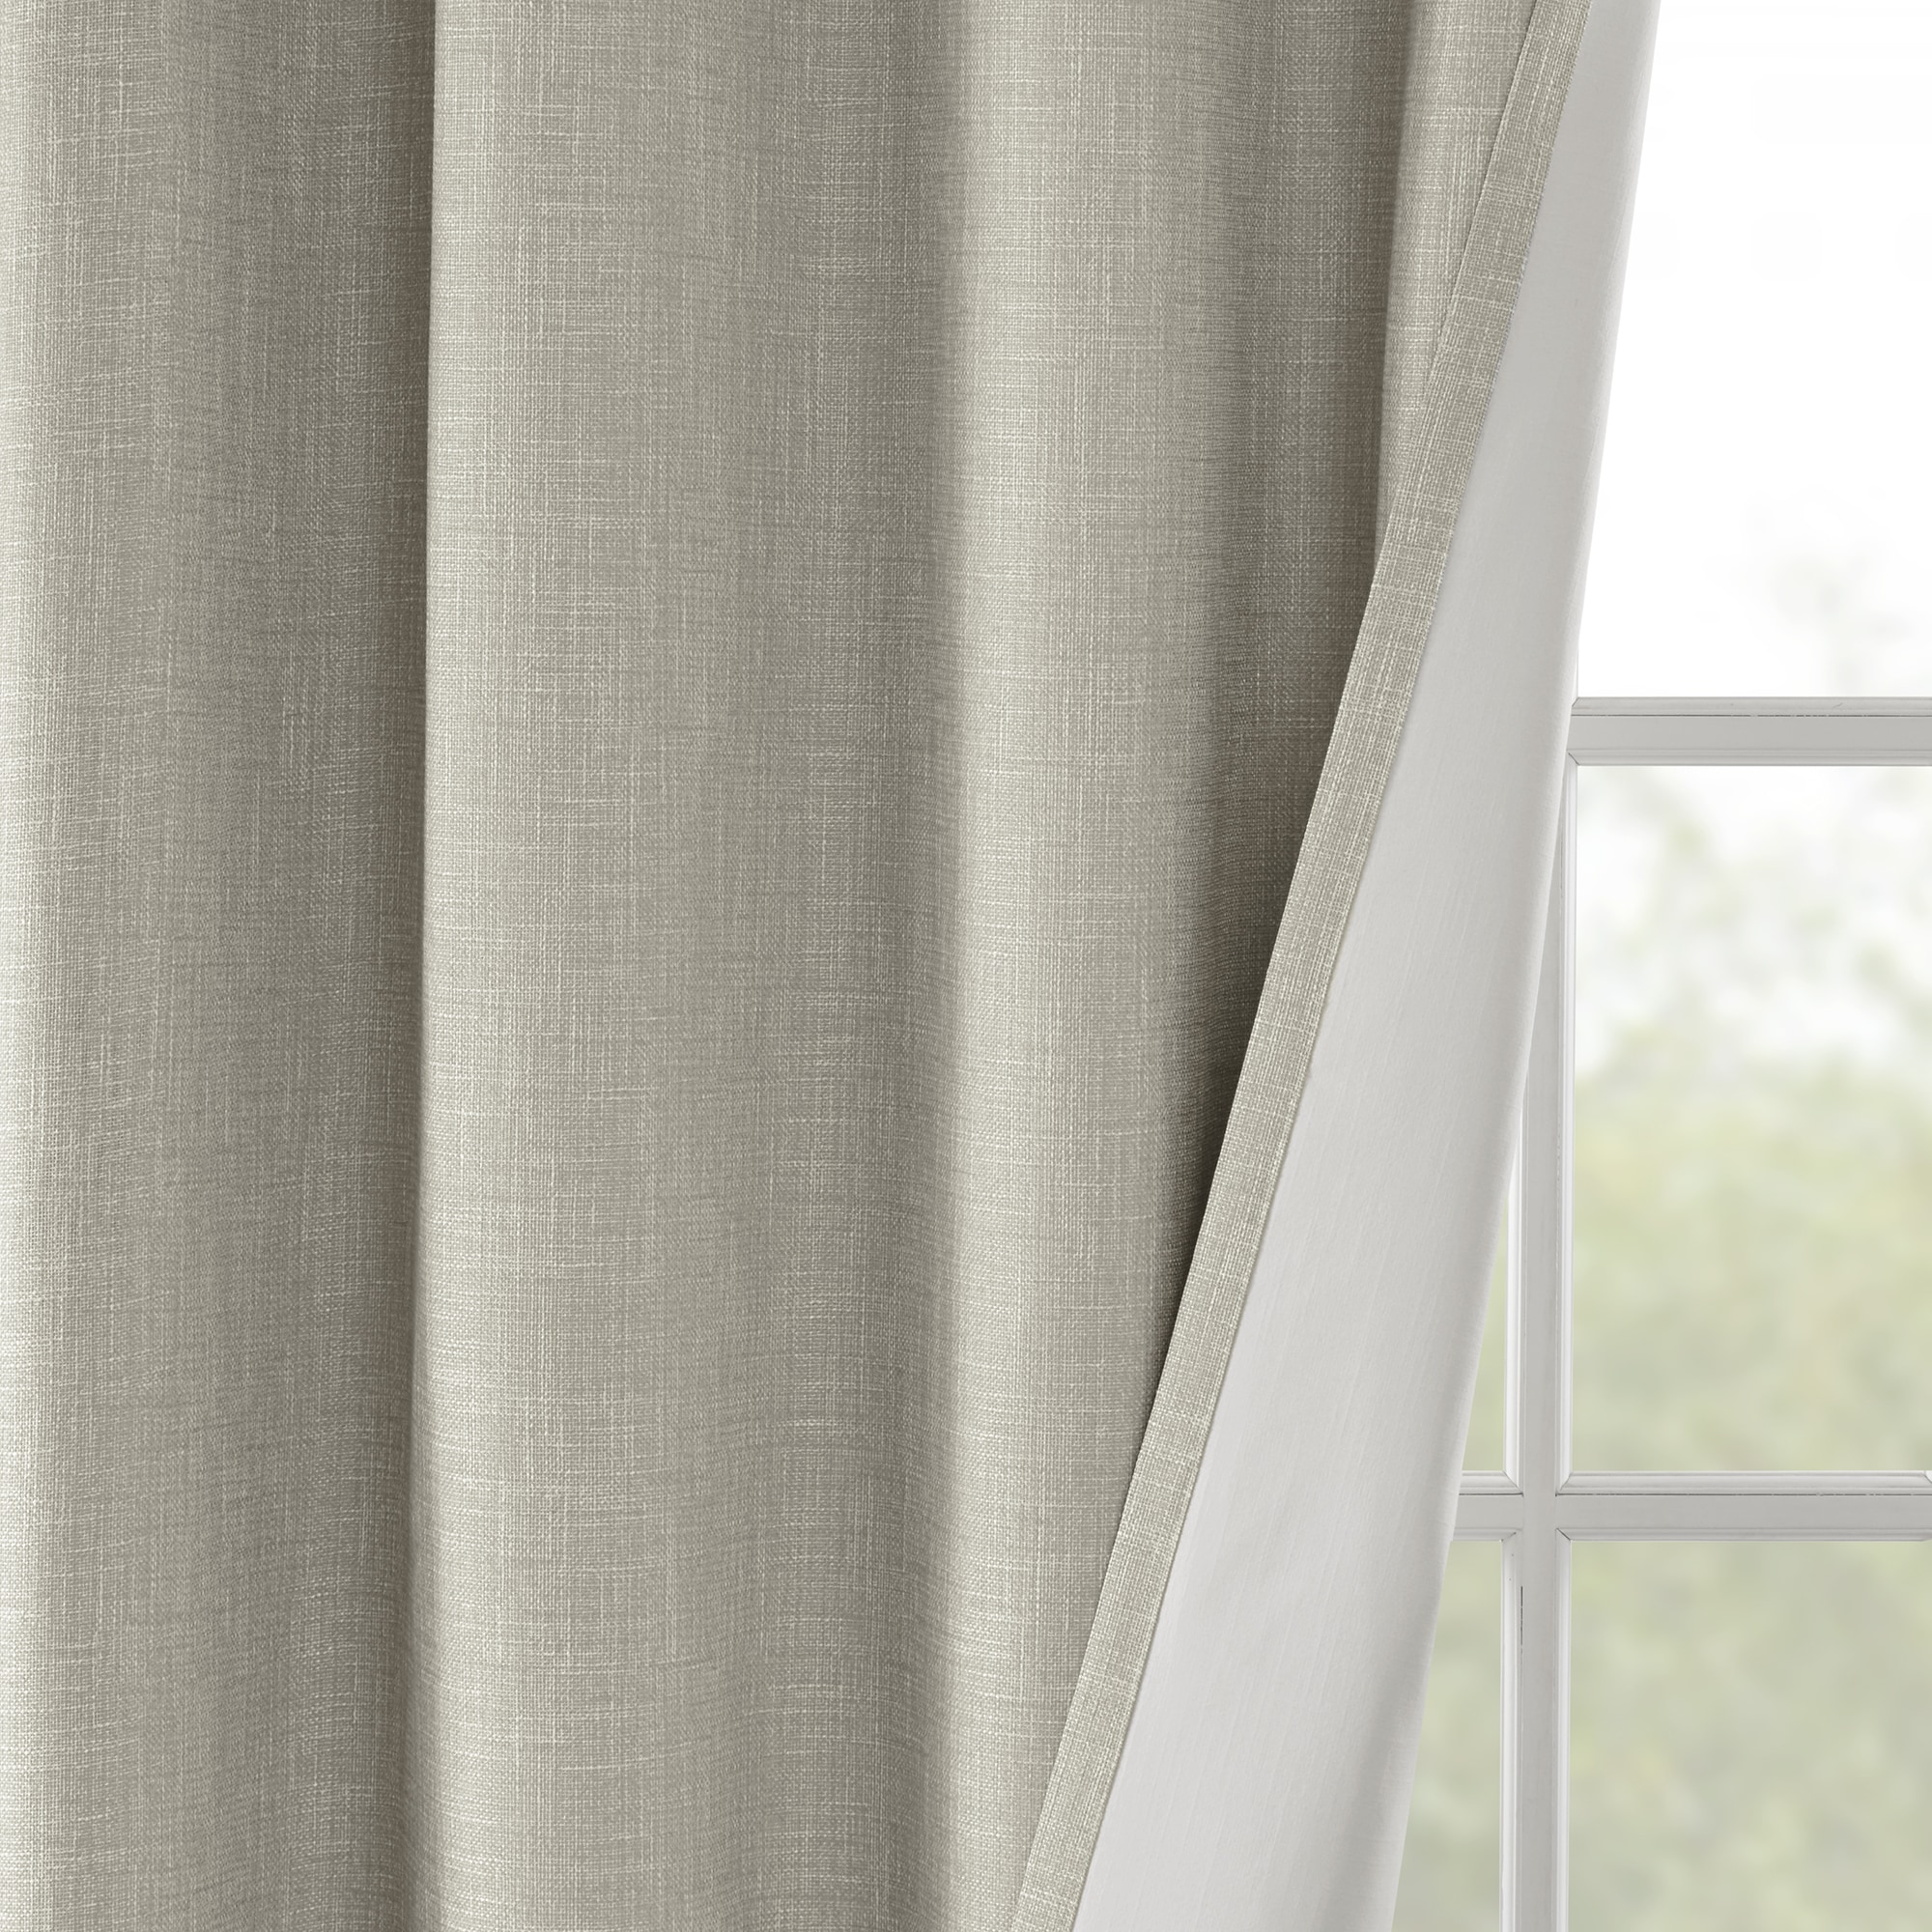 pleat solid window tab grove panel flax wayfair reviews single treatments belgian linen semi blackout pinch curtains ca pdp sheer top tie verdon curtain august